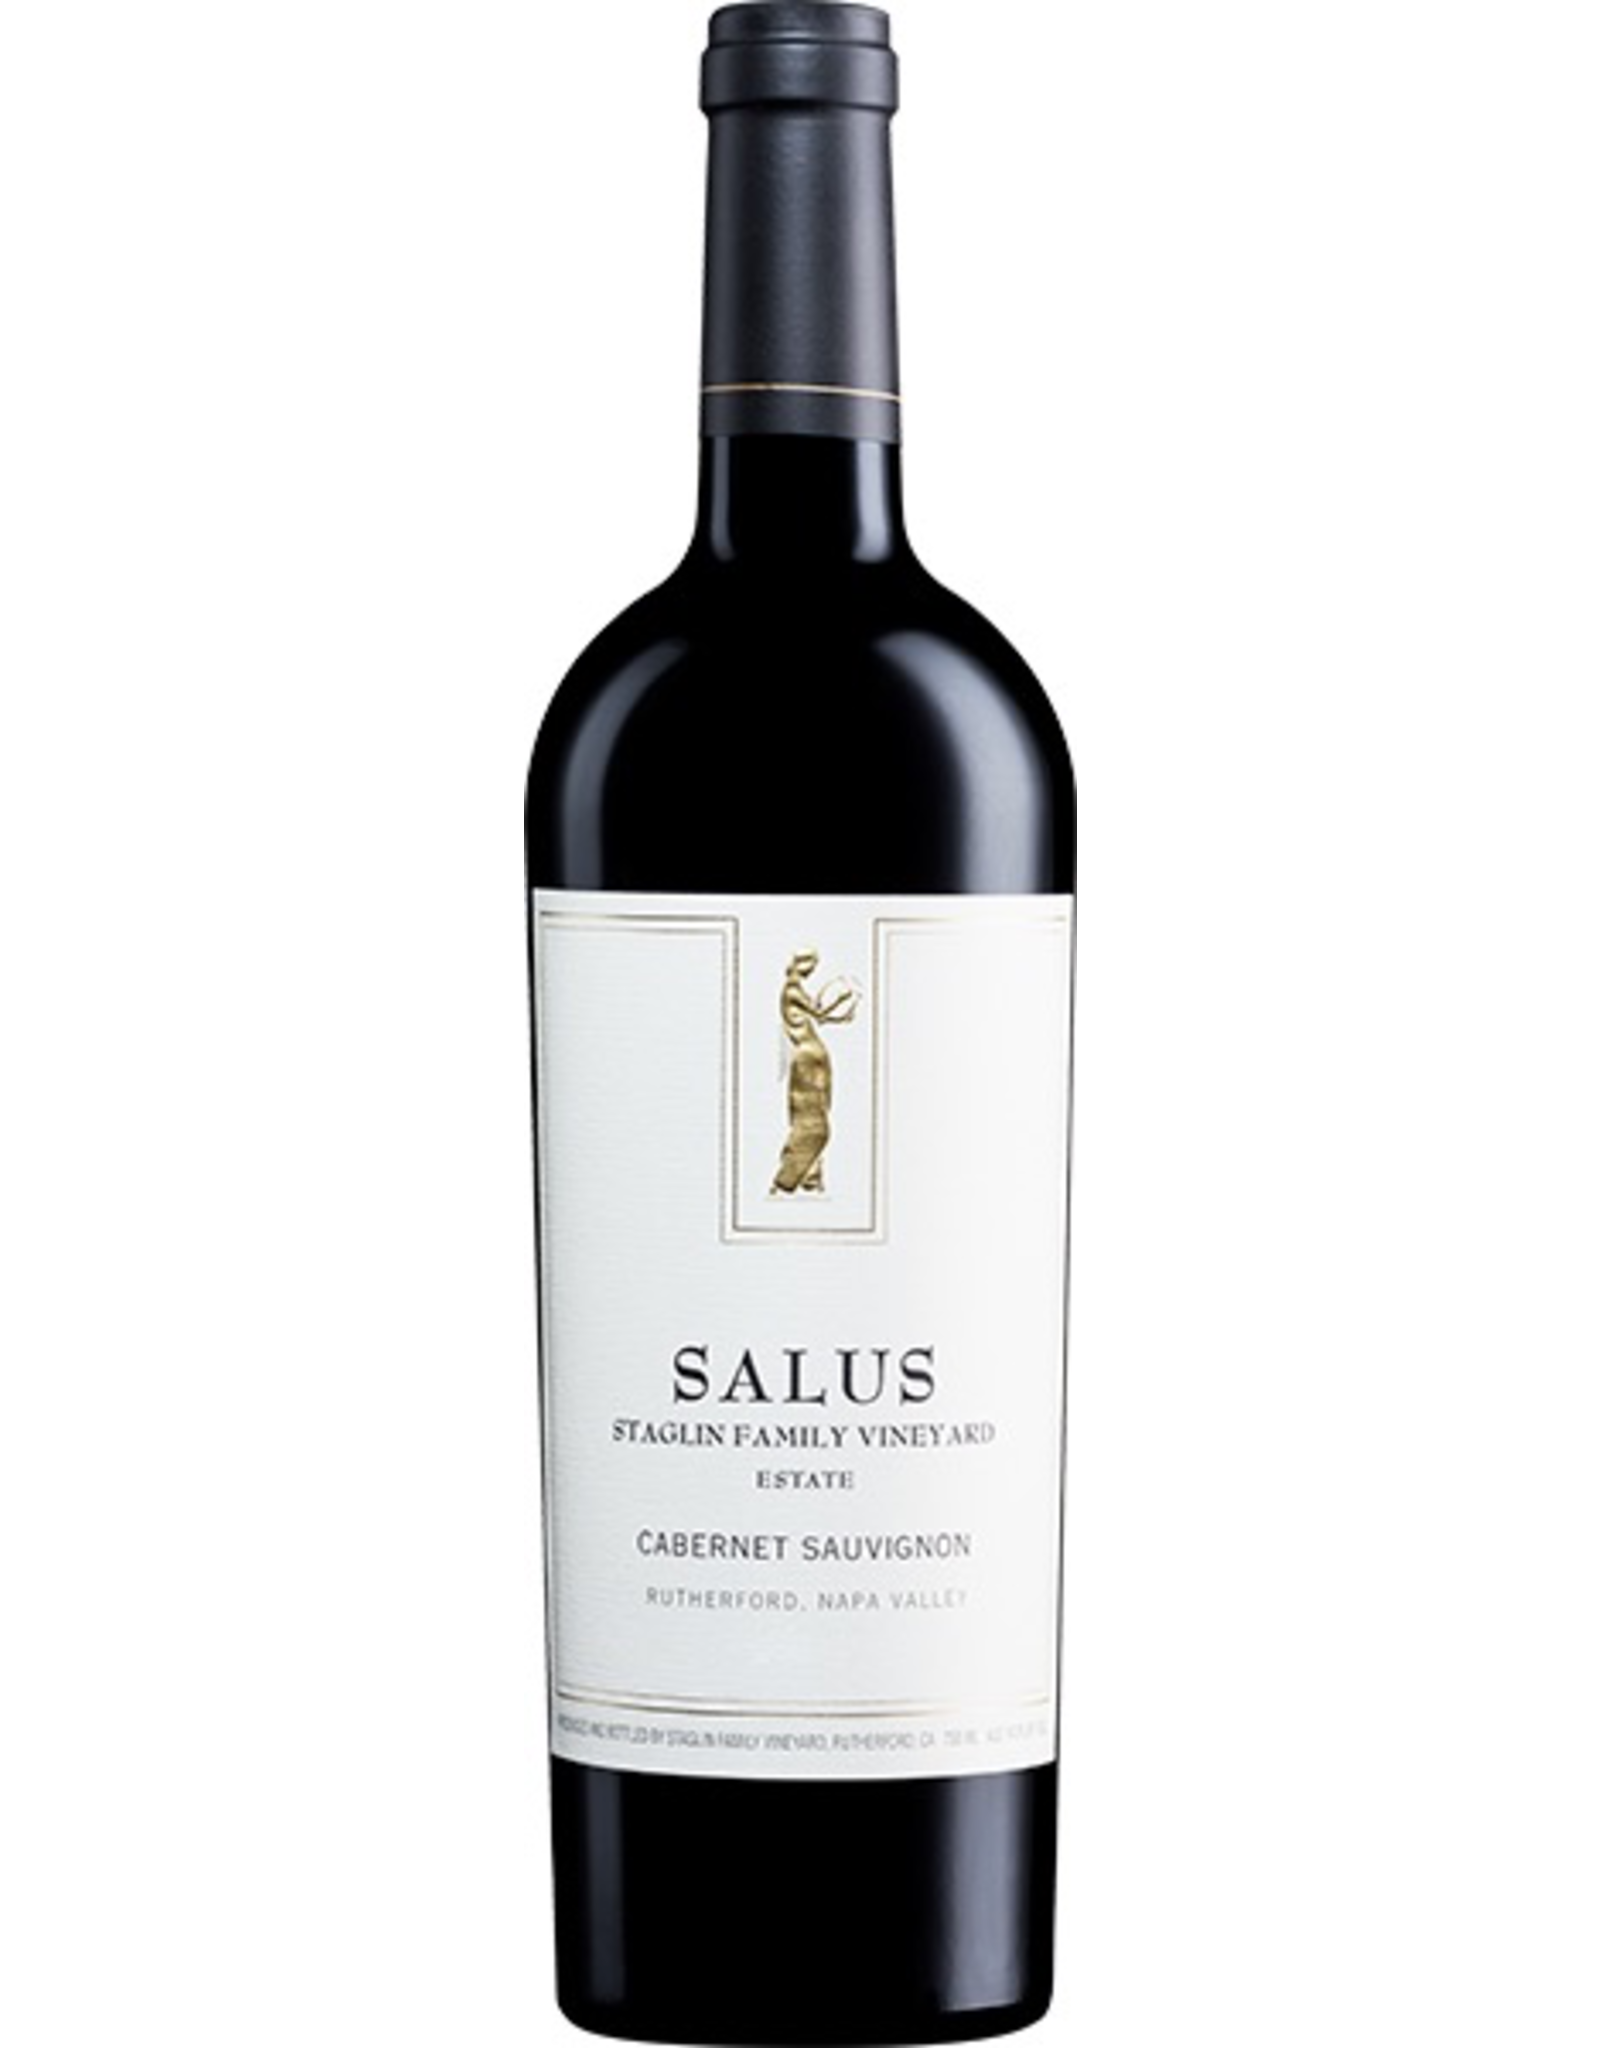 Red Wine 2016, Saulus by Staglin Estate Vineyard Rutherford, Cabernet Sauvignon, Rutherford, Napa Valley, California,14.9% Alc, CTnr